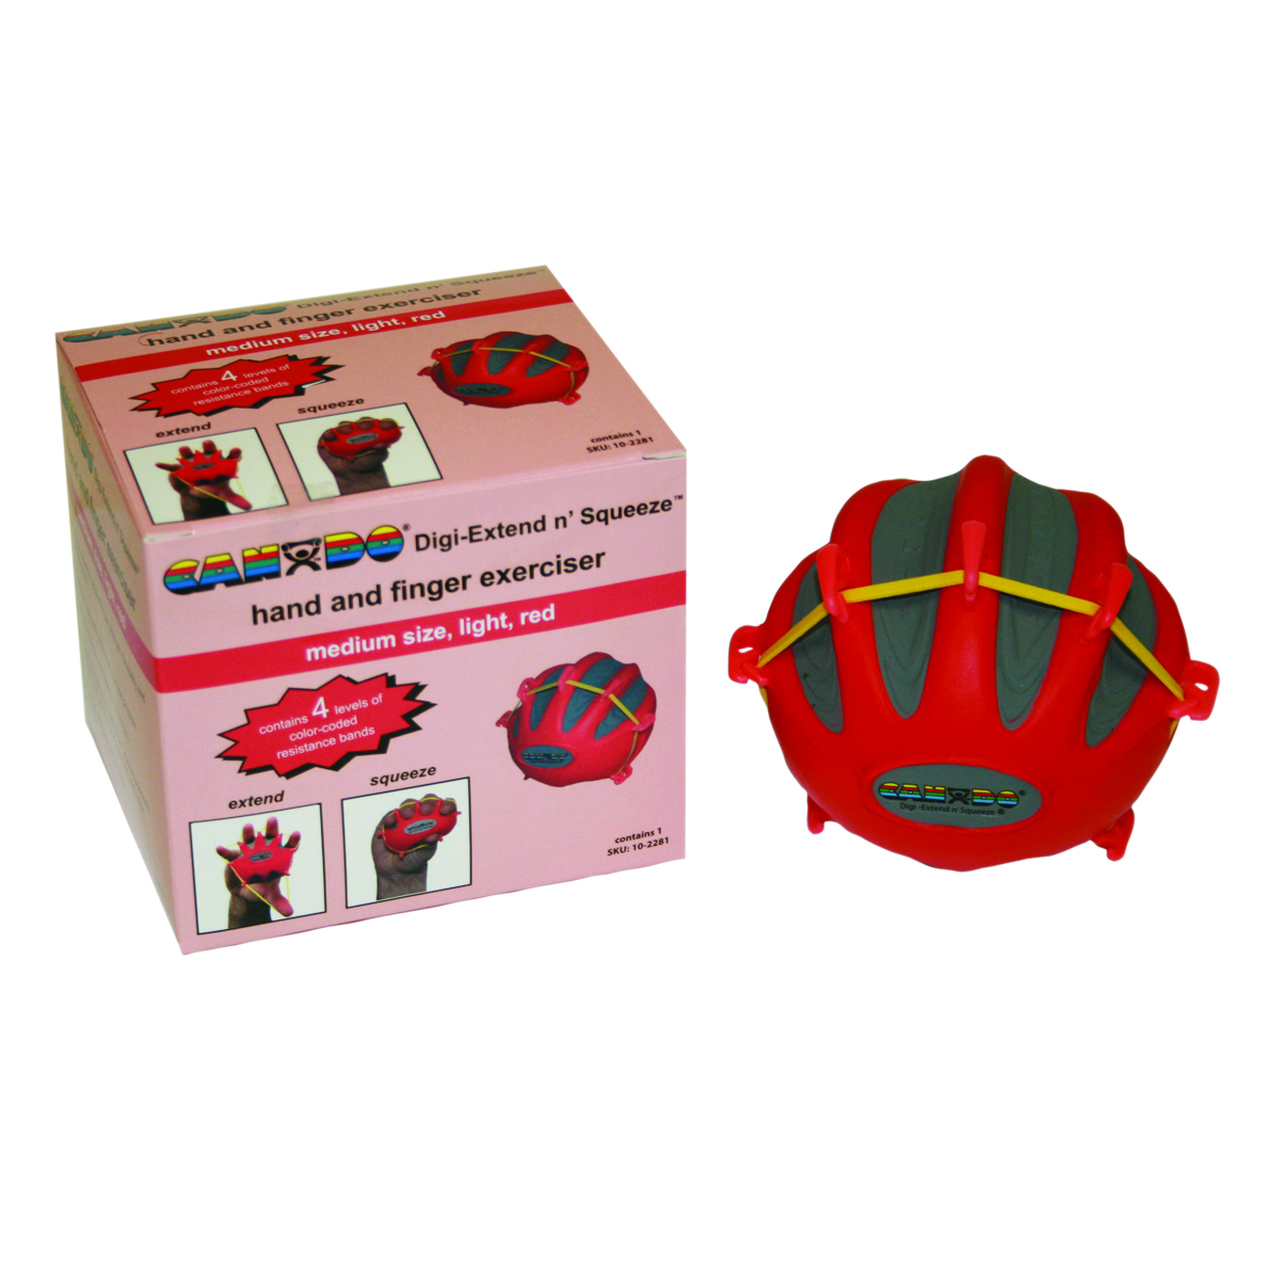 CanDo¨ Digi-Extend n' Squeeze¨ Hand Exerciser - Large - Red, light